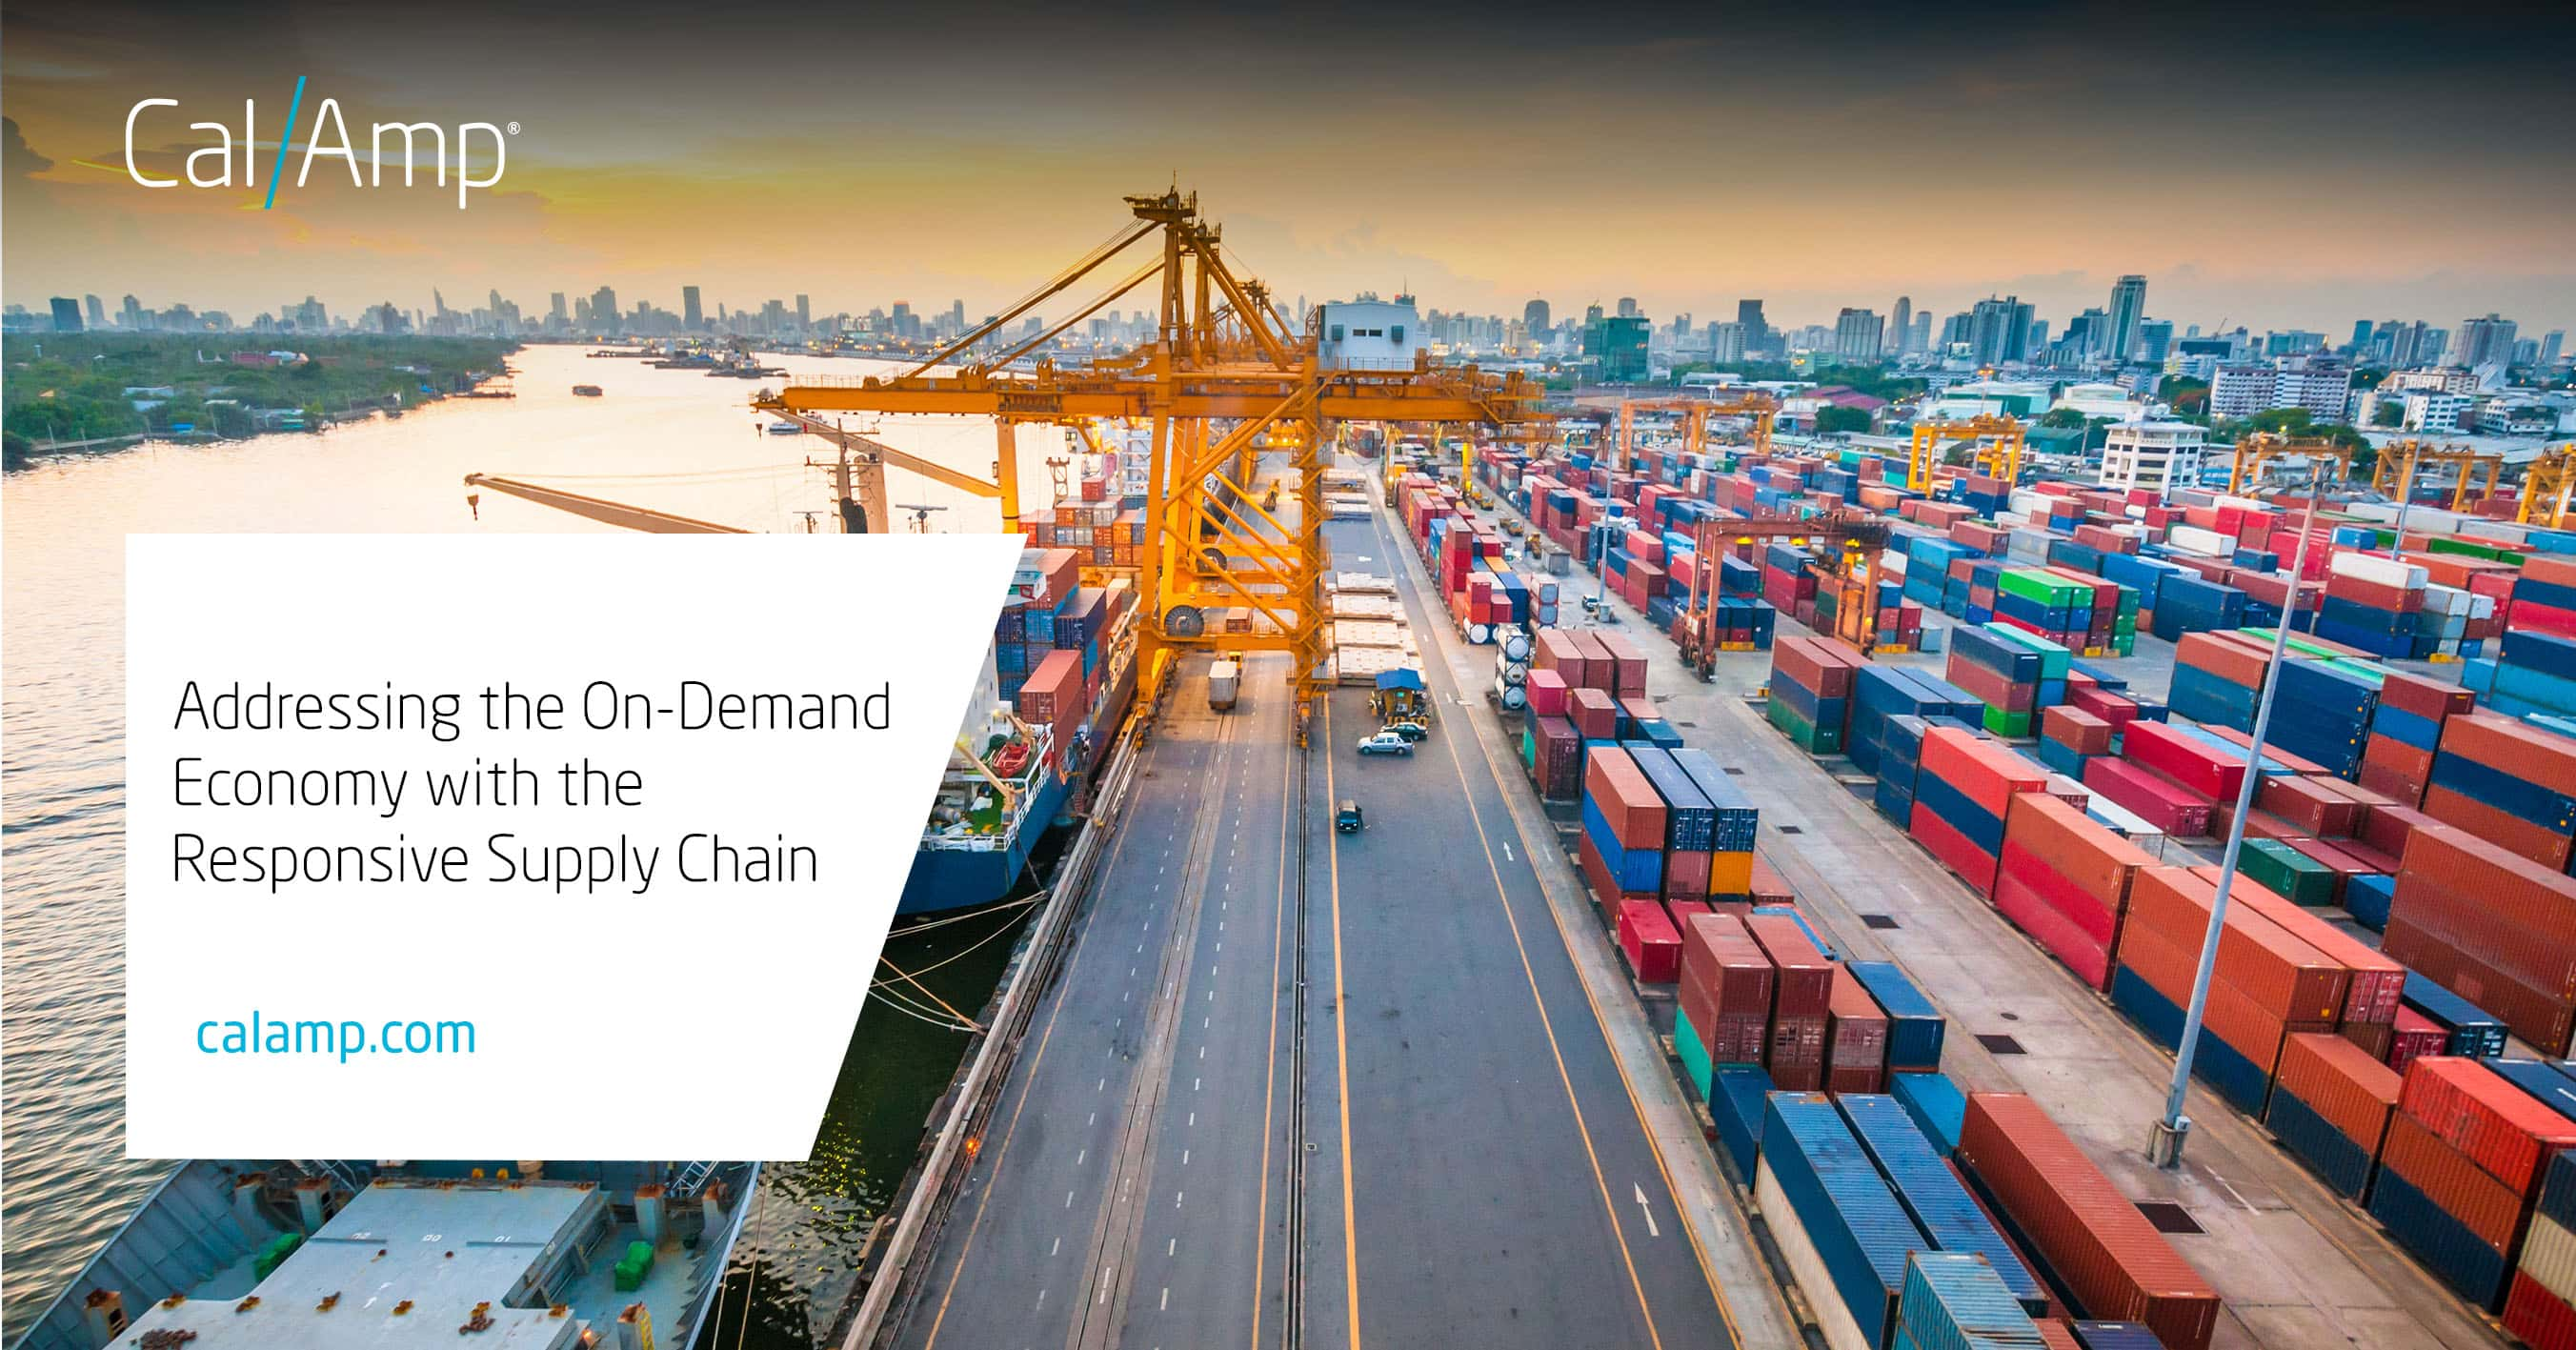 Addressing the On-Demand Economy with the Responsive Supply Chain